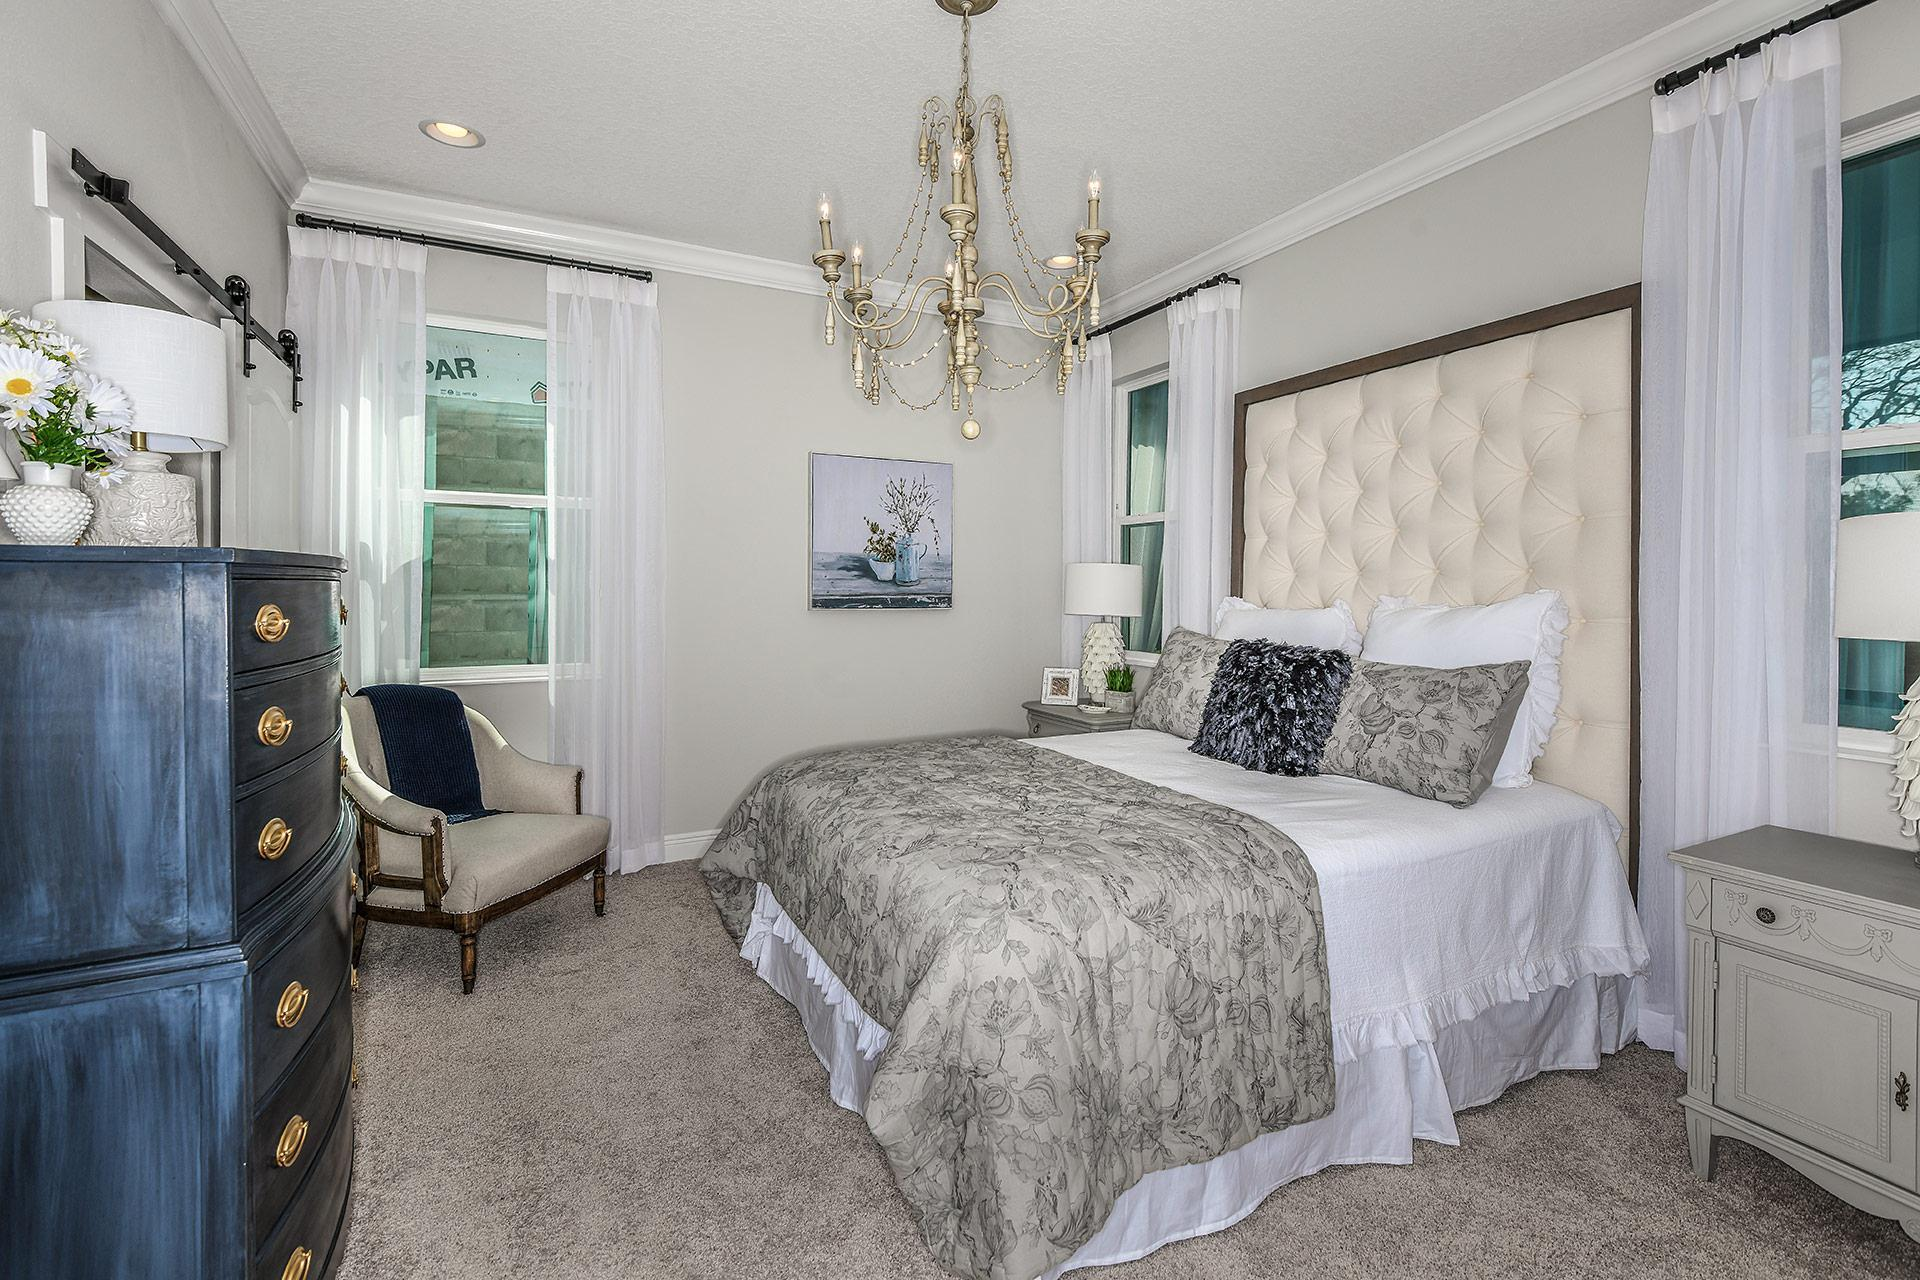 Bedroom featured in the Capri Del Lago By Mobley Homes in Tampa-St. Petersburg, FL